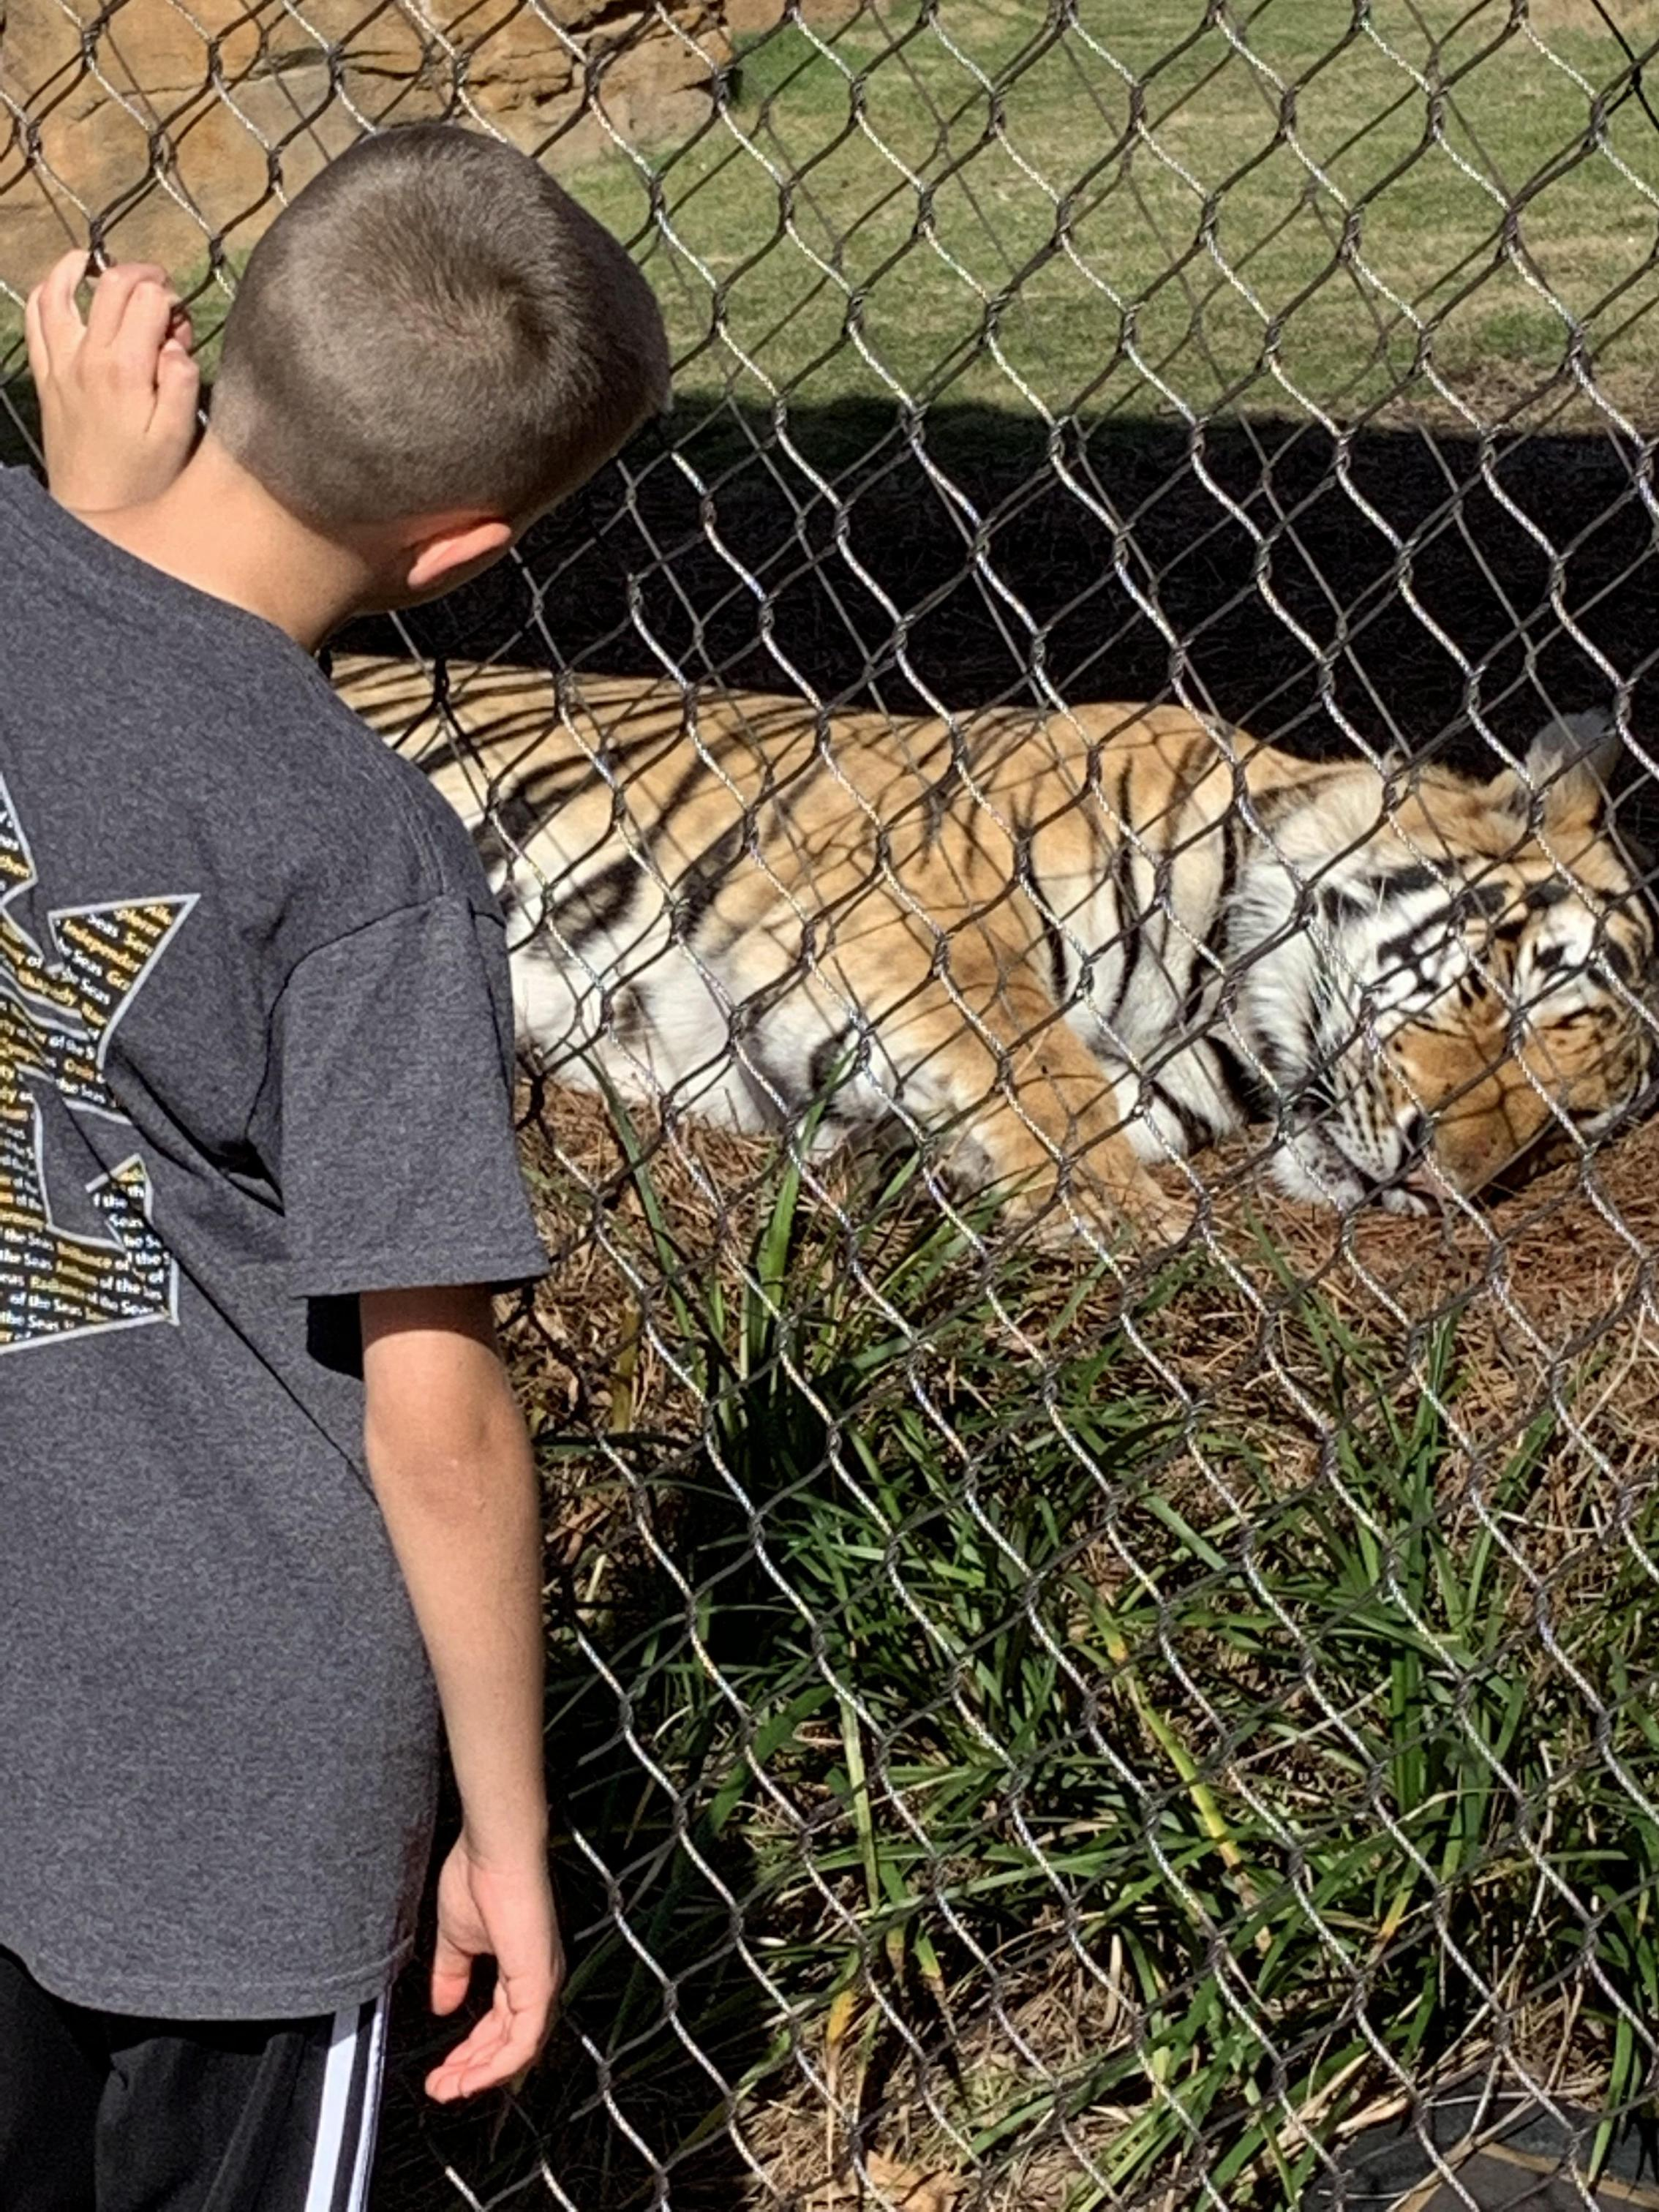 We love visiting LSU's famous Mike the Tiger every chance we get!